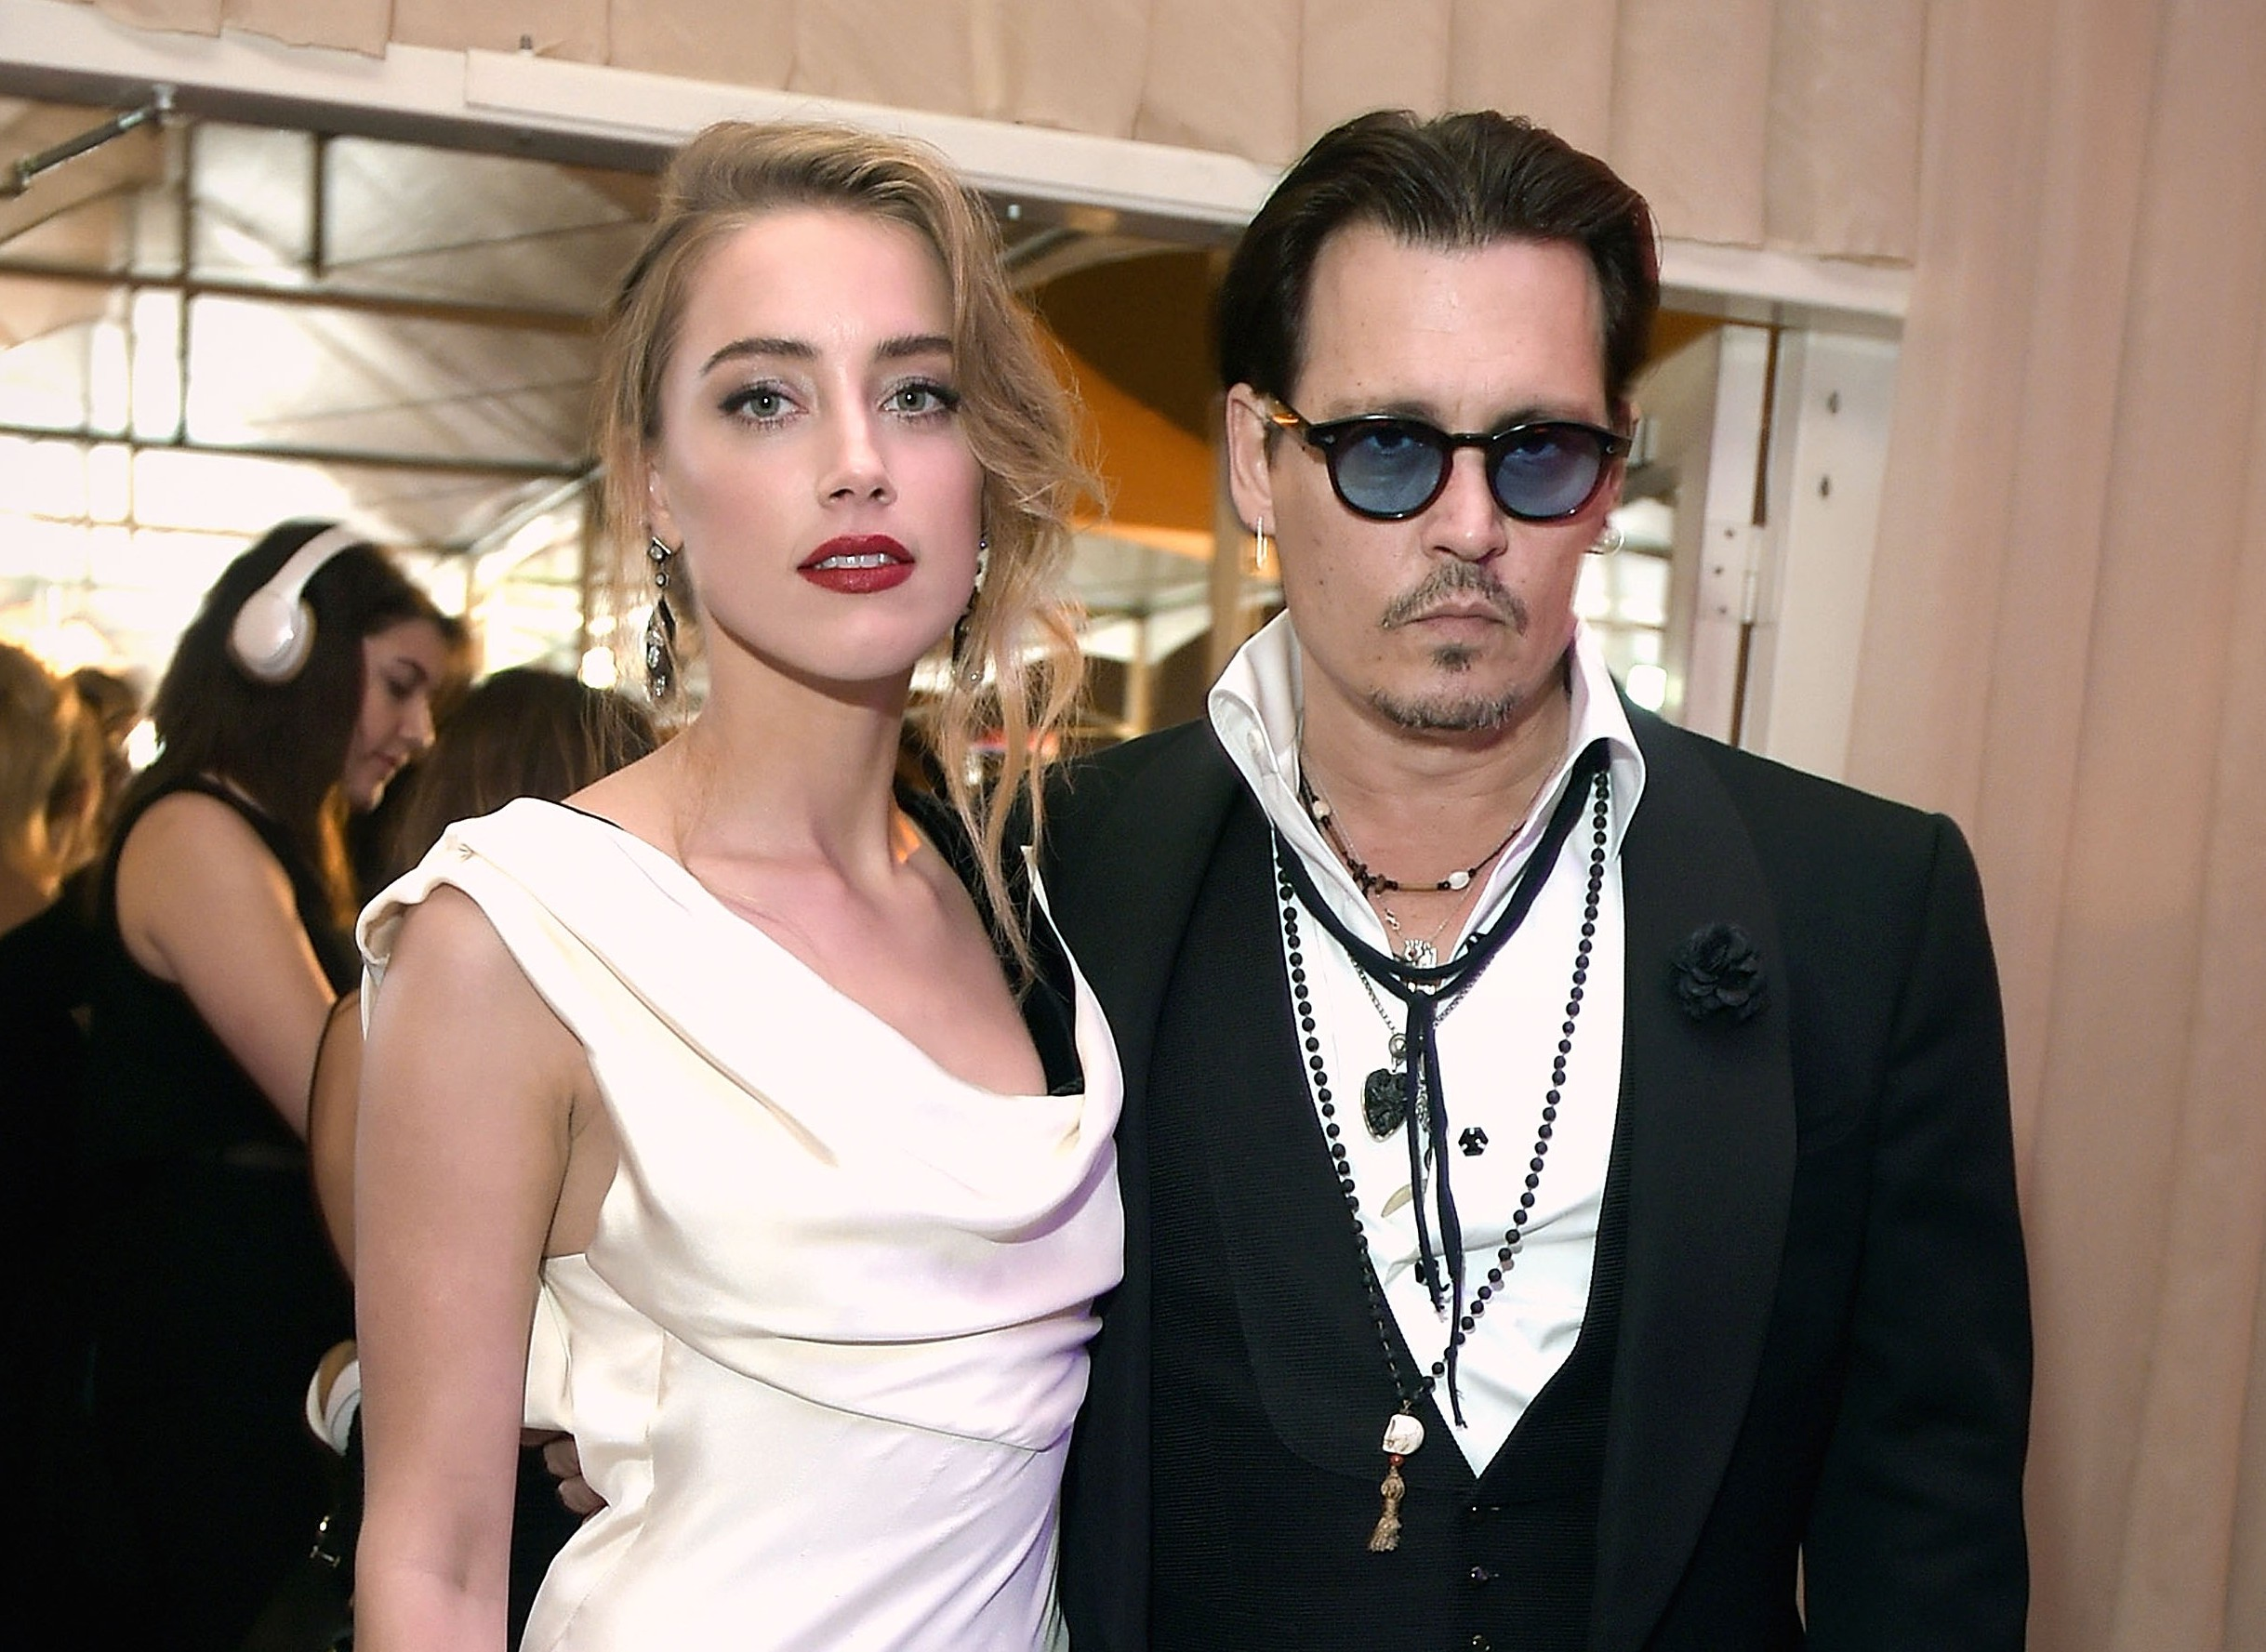 Johnny Depp's lawyer says Amber Heard's abuse claims are a 'response to negative media attention'